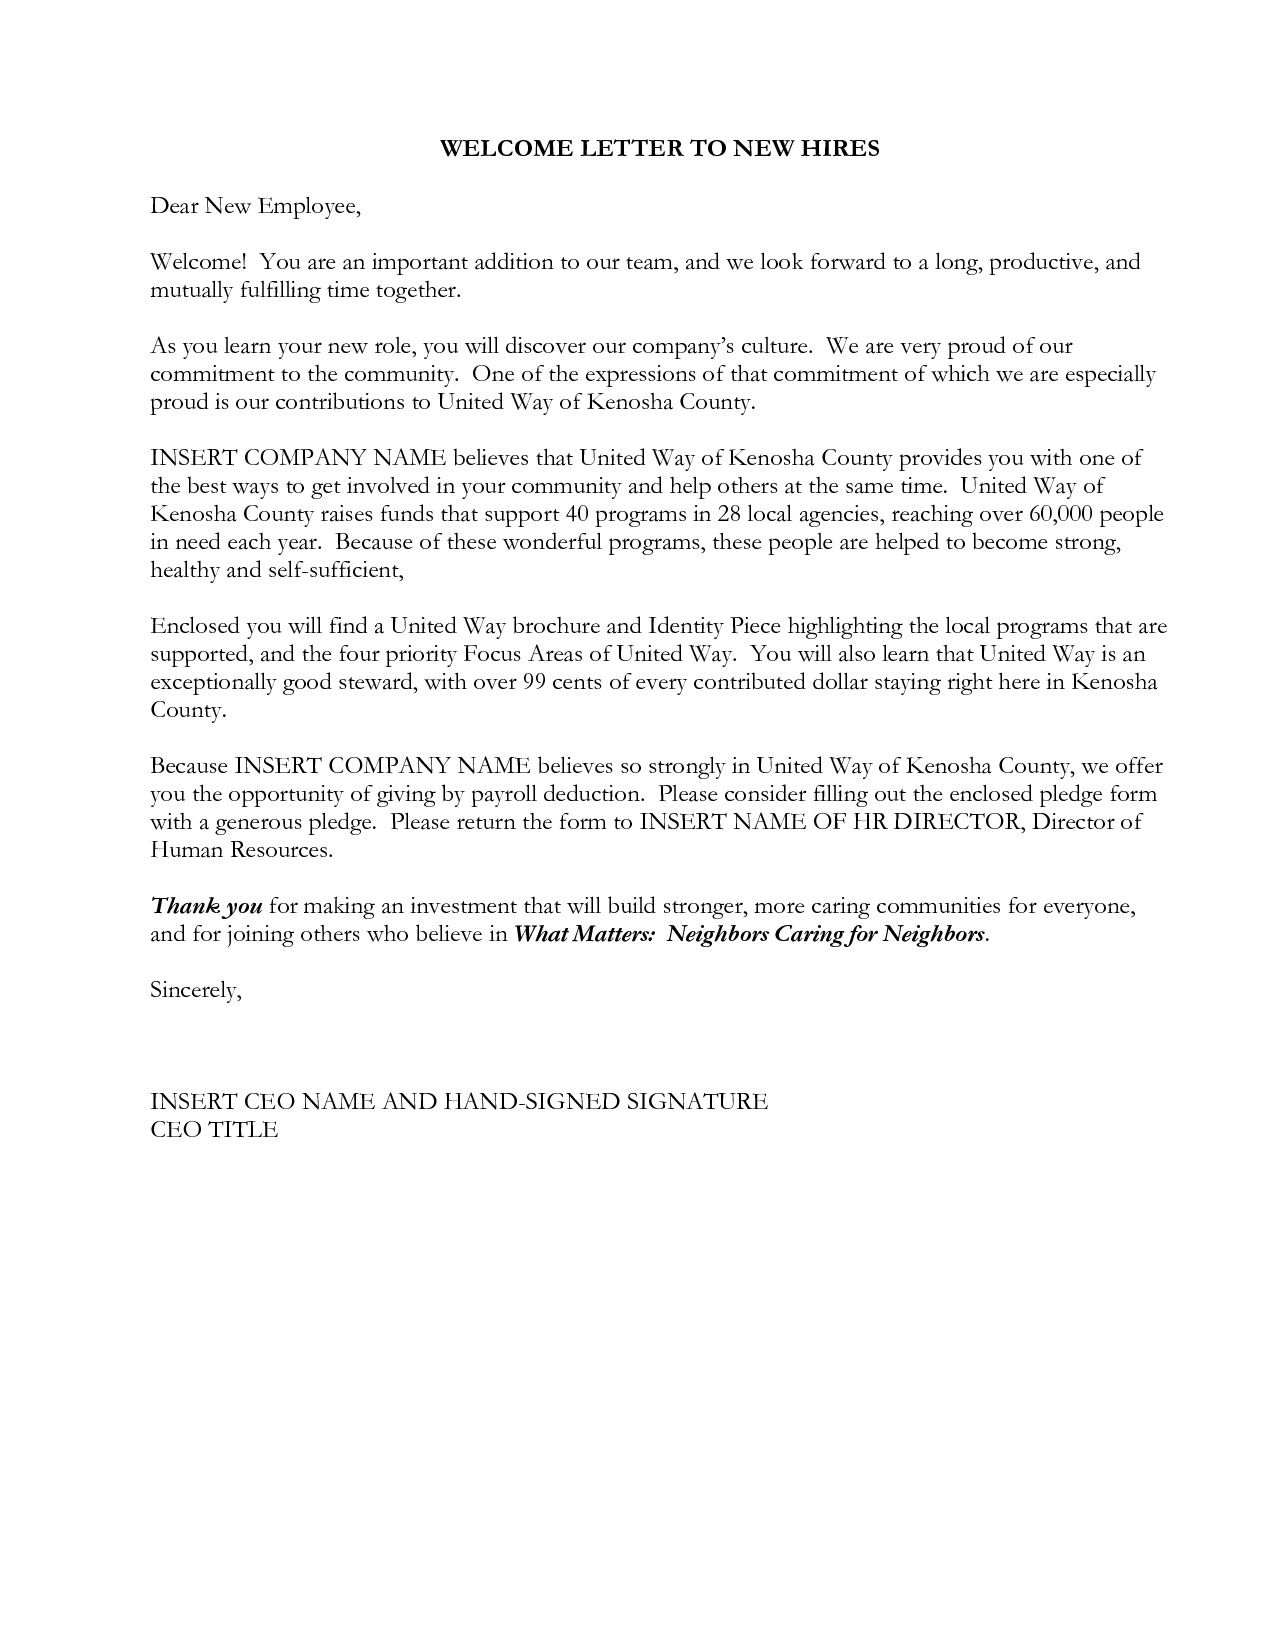 50 Letter to New Employee Vw6i Check more at https